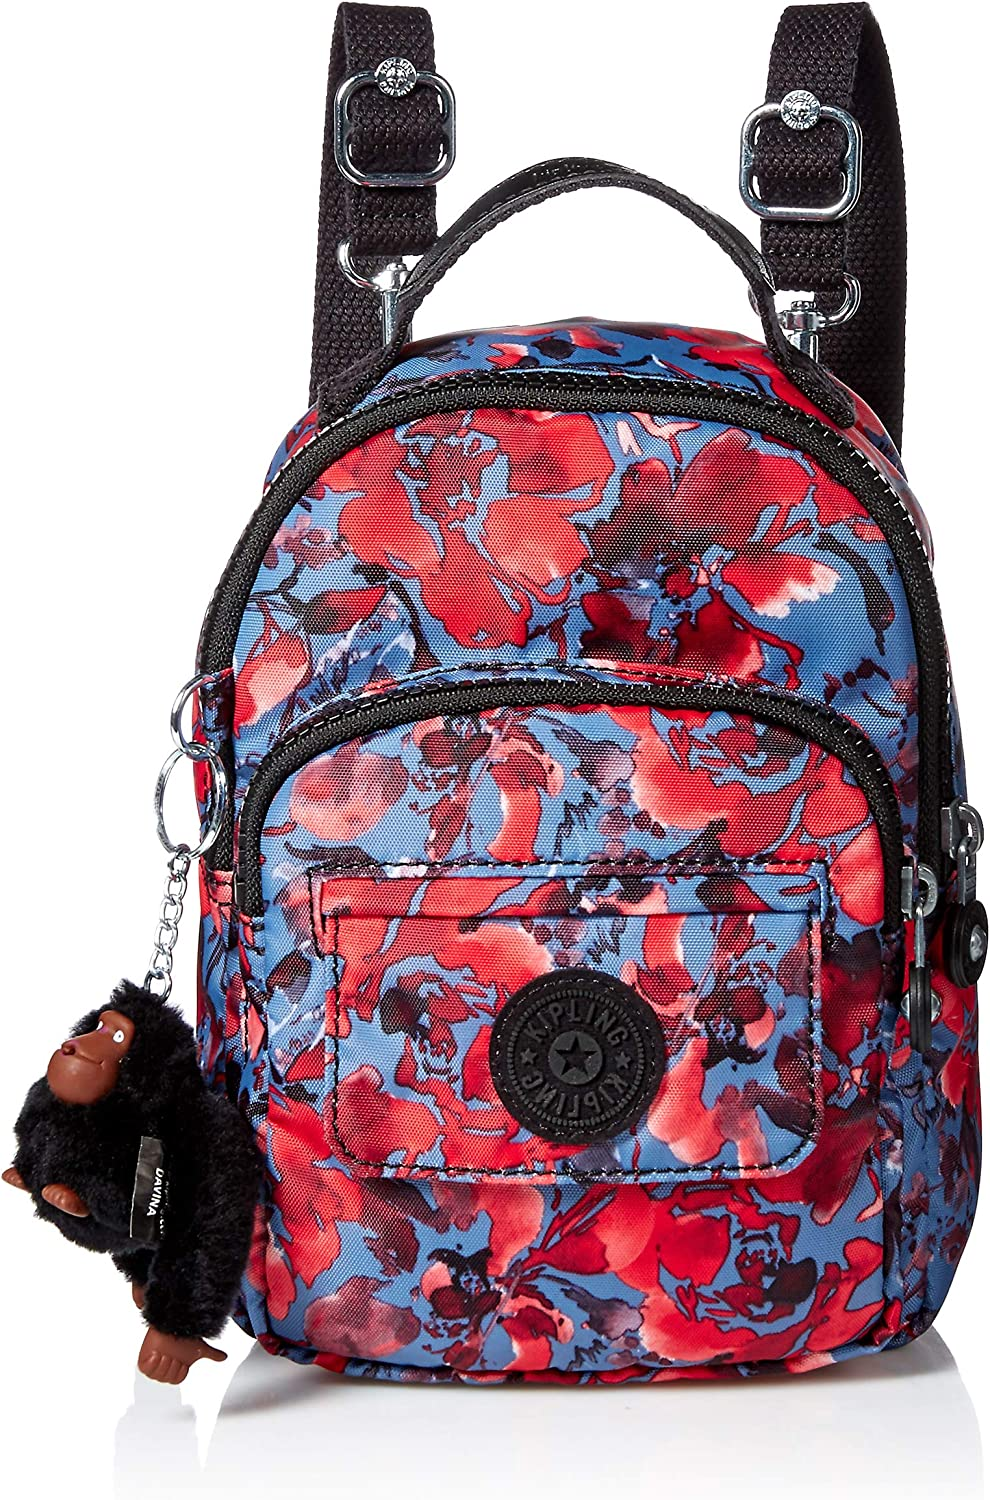 Kipling womens Alber 3in1 Congreenible Mini Bag Backpack